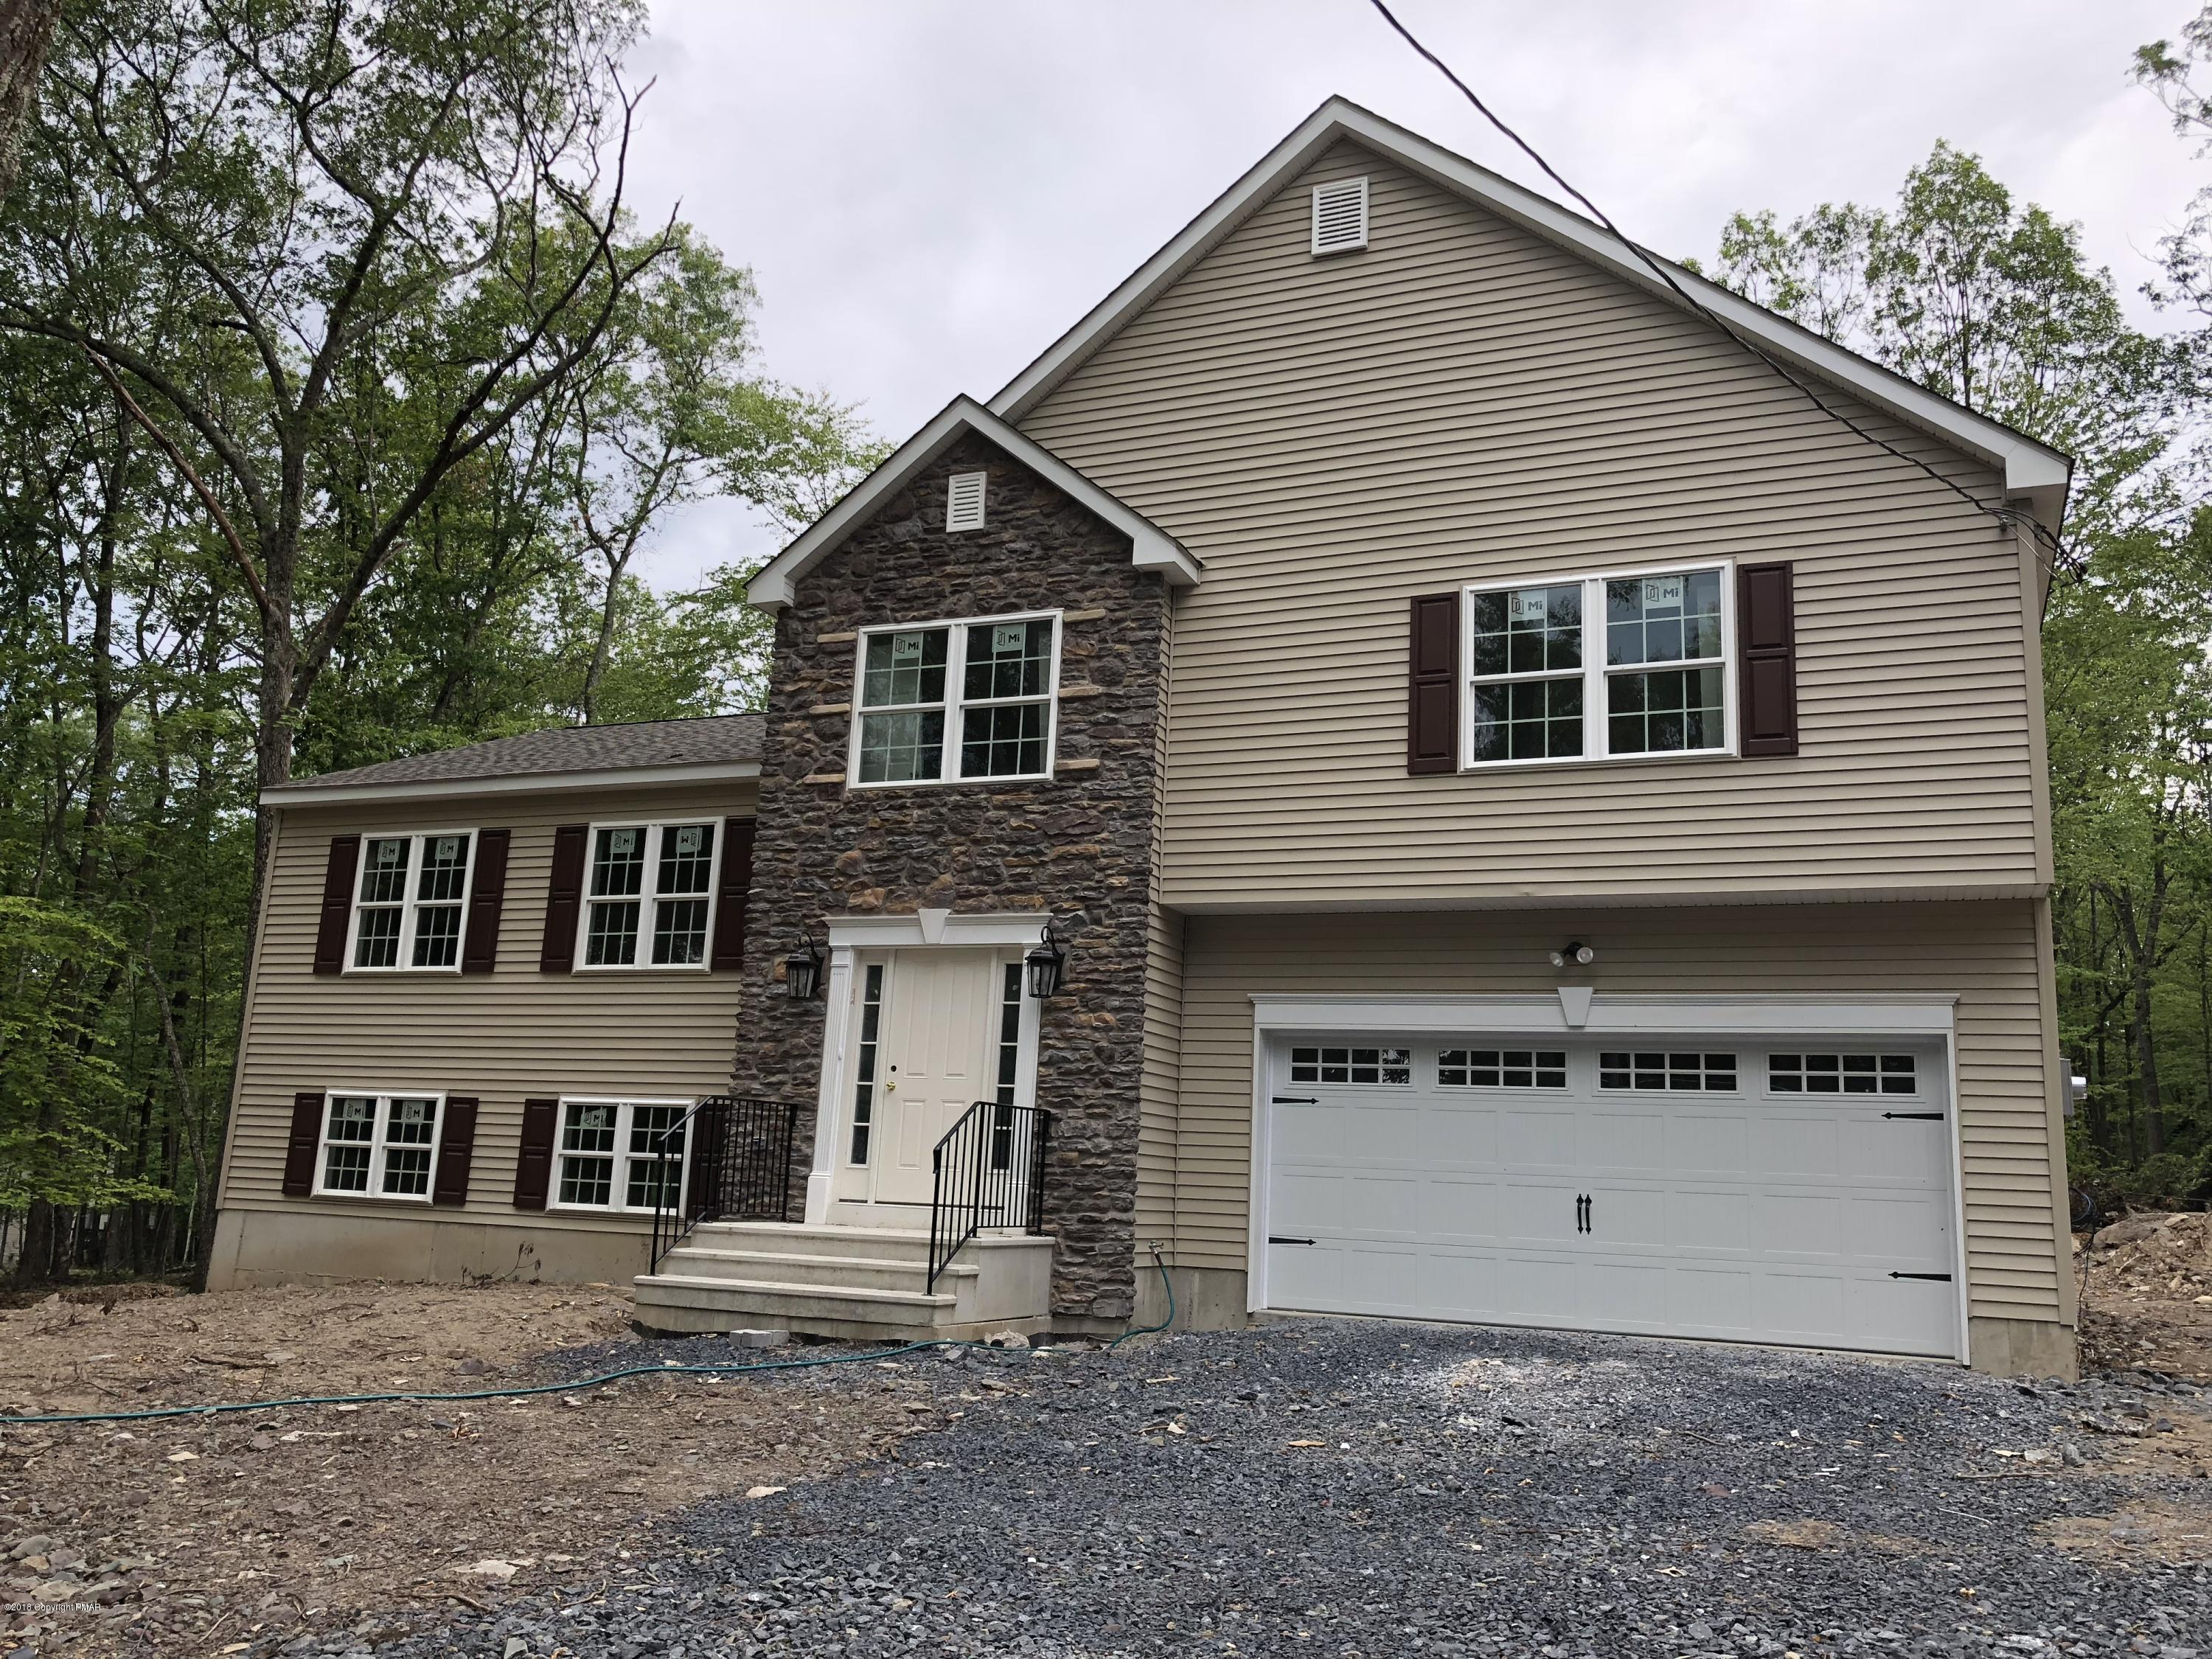 Trafalgar Homes 4 Bed 2 Full 1 Partial Baths Home In East Stroudsburg For 289 900